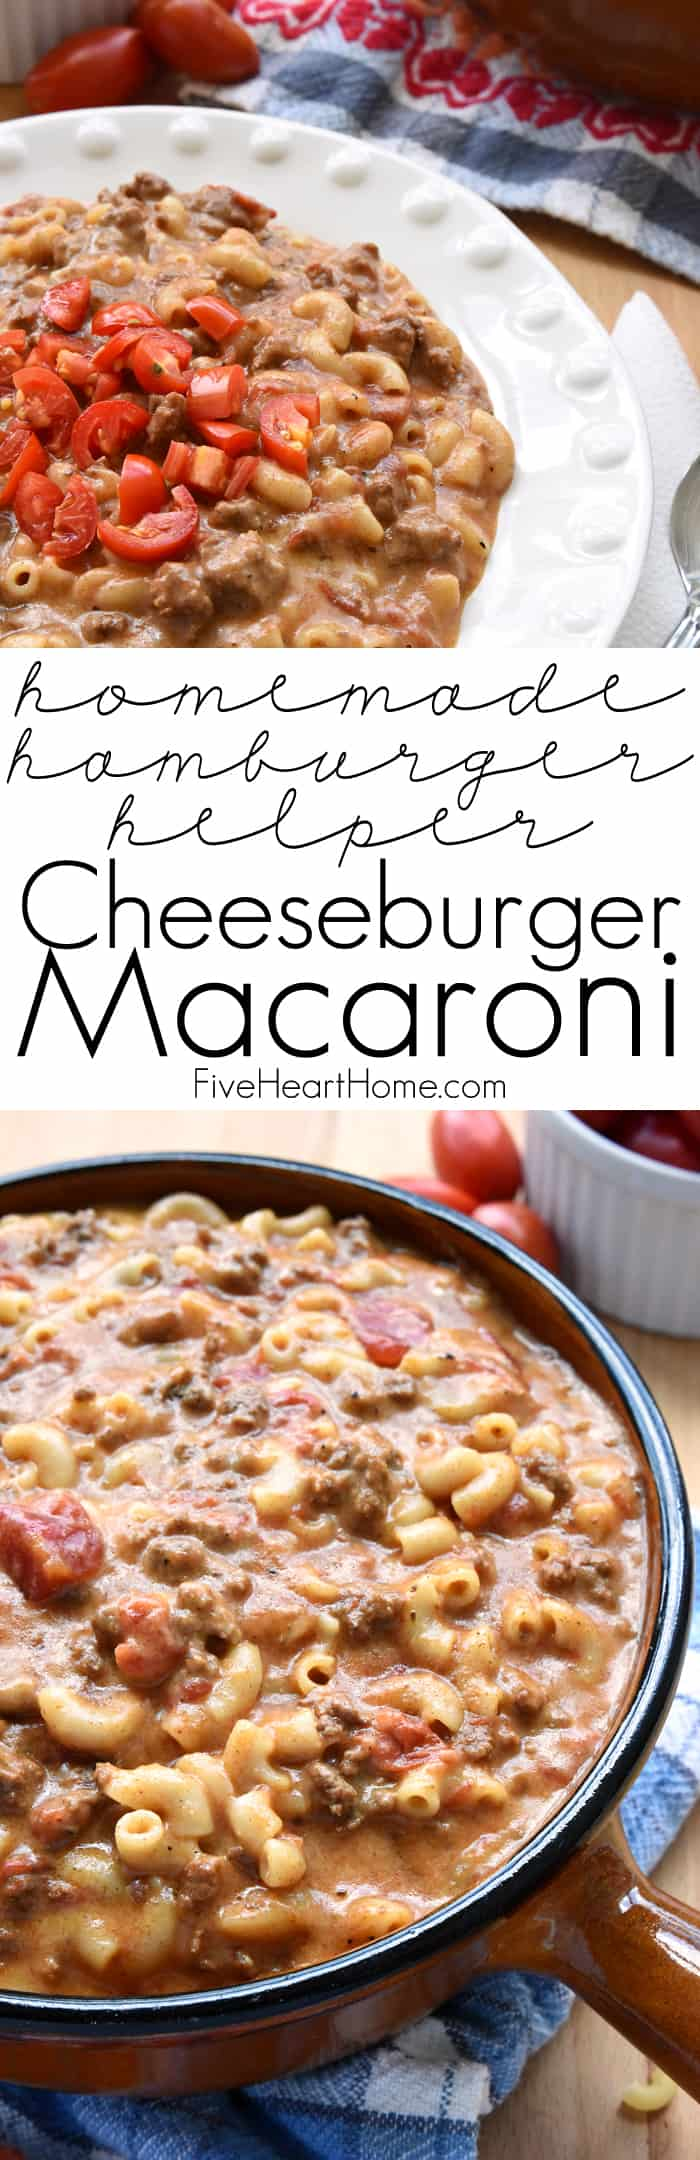 Homemade Hamburger Helper / Cheeseburger Macaroni ~ a creamy, flavorful, all-natural, copycat recipe of the classic, with an easy, from-scratch cheese sauce that puts it over the top! | FiveHeartHome.com